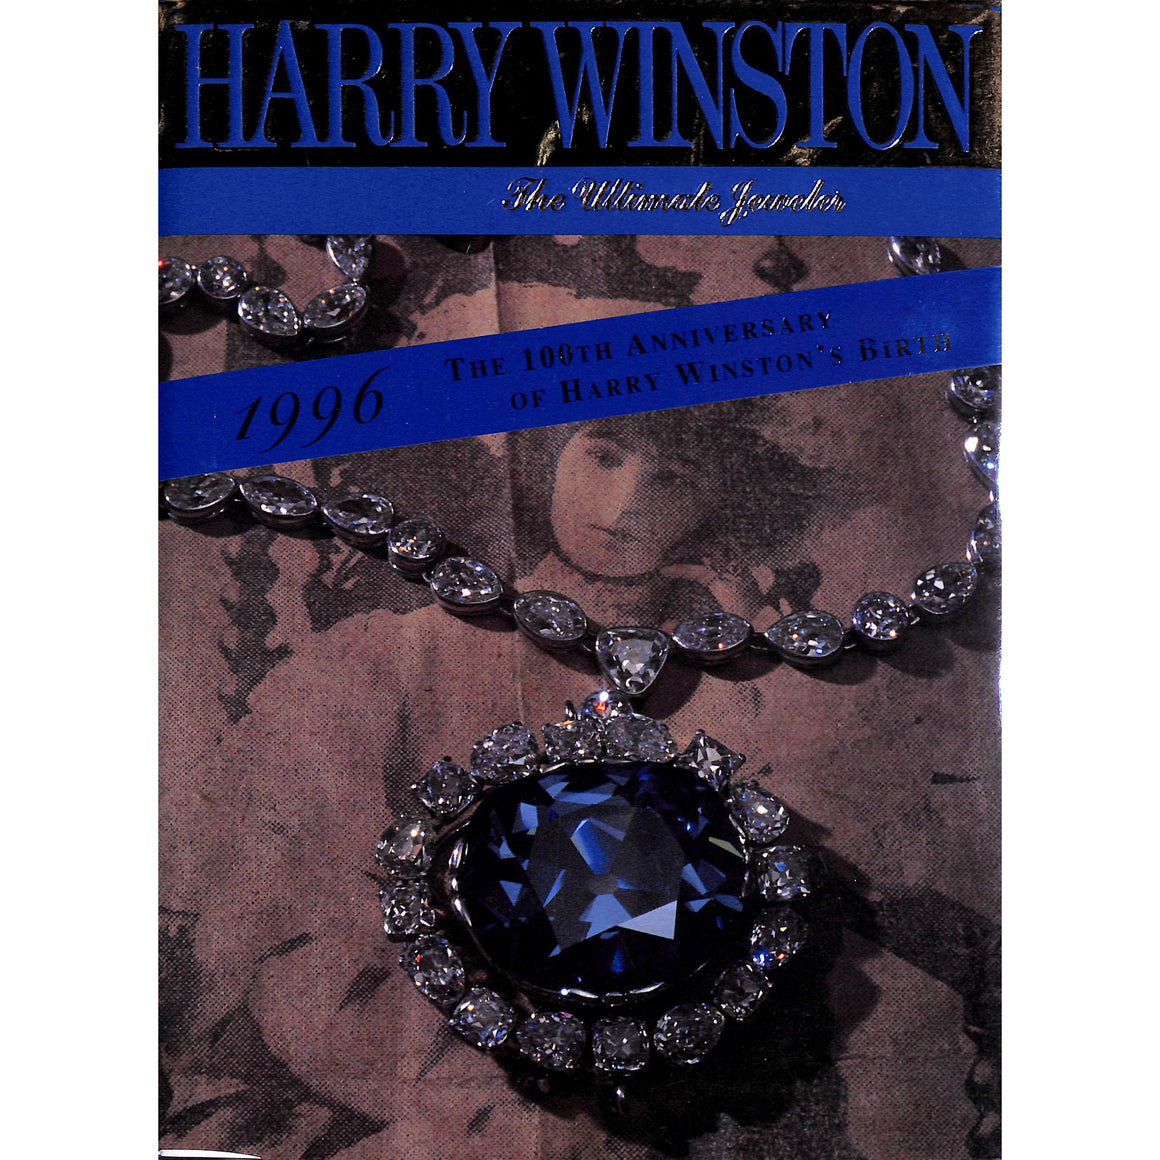 Harry Winston: The Ultimate Jeweler